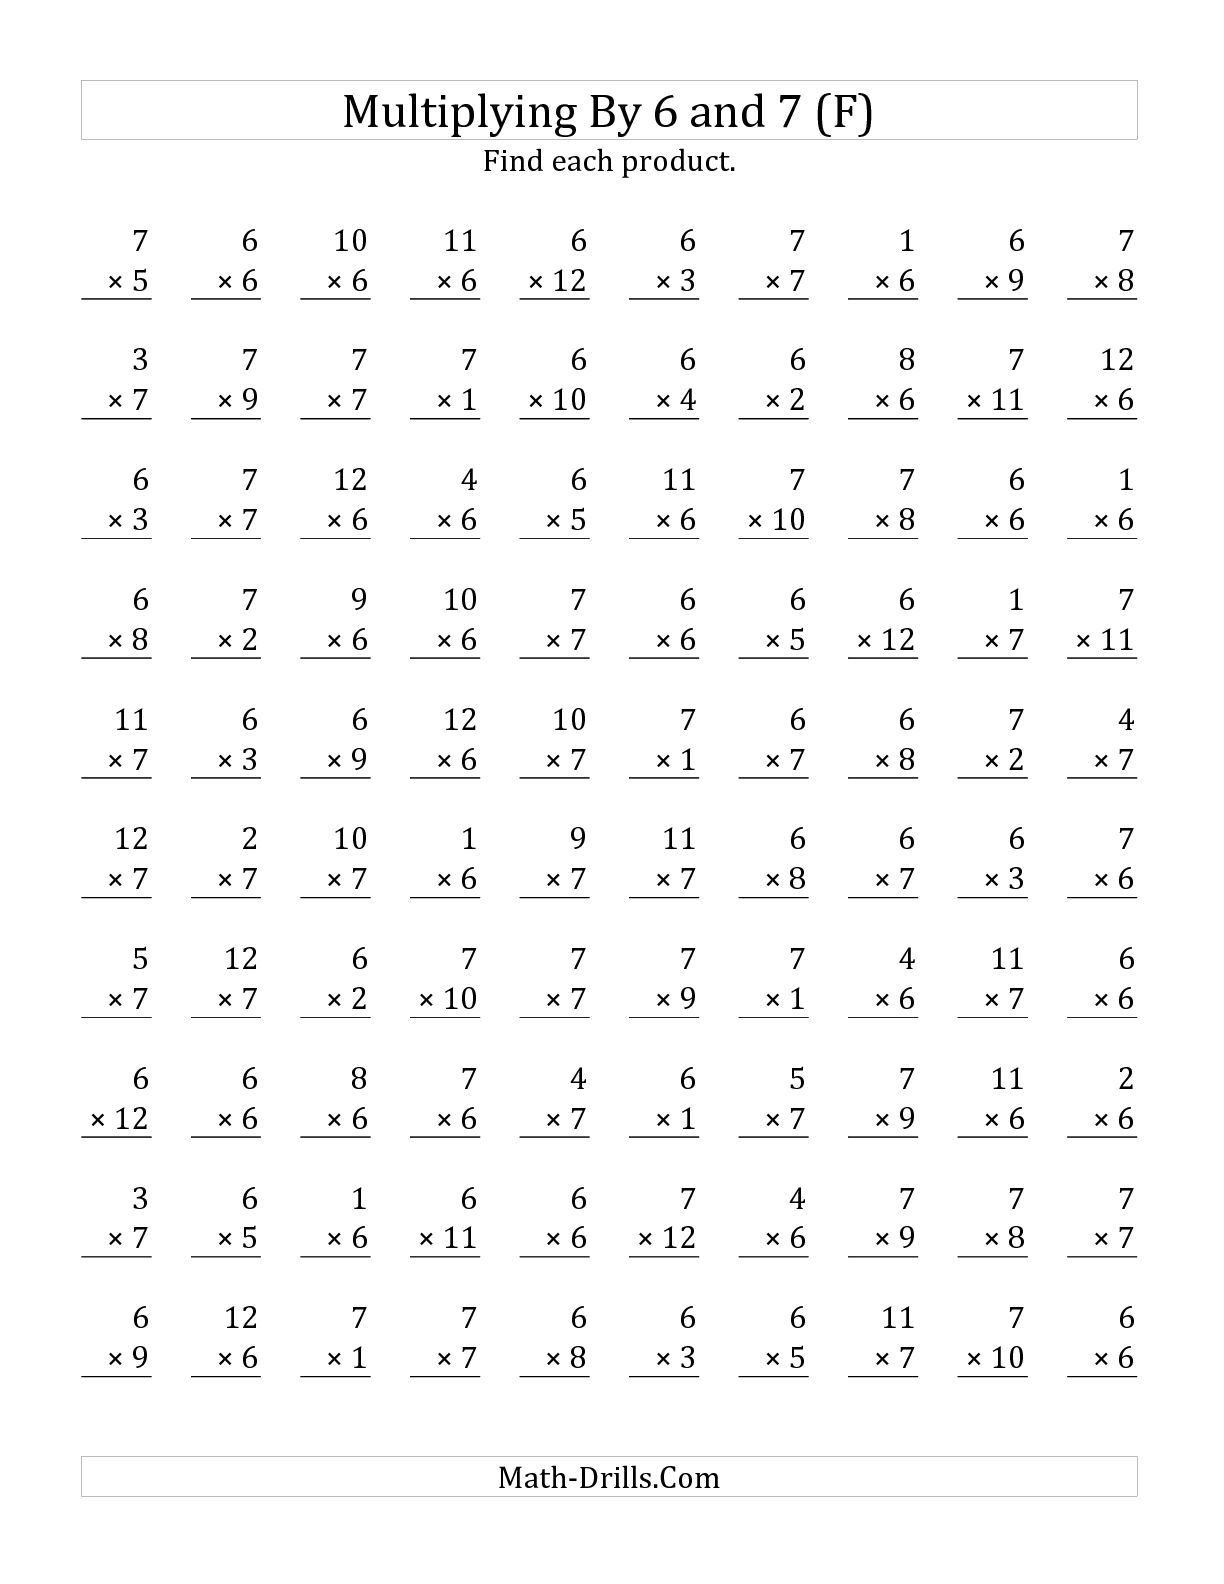 The Multiplying 1 to 12 by 6 and 7 (F) Math